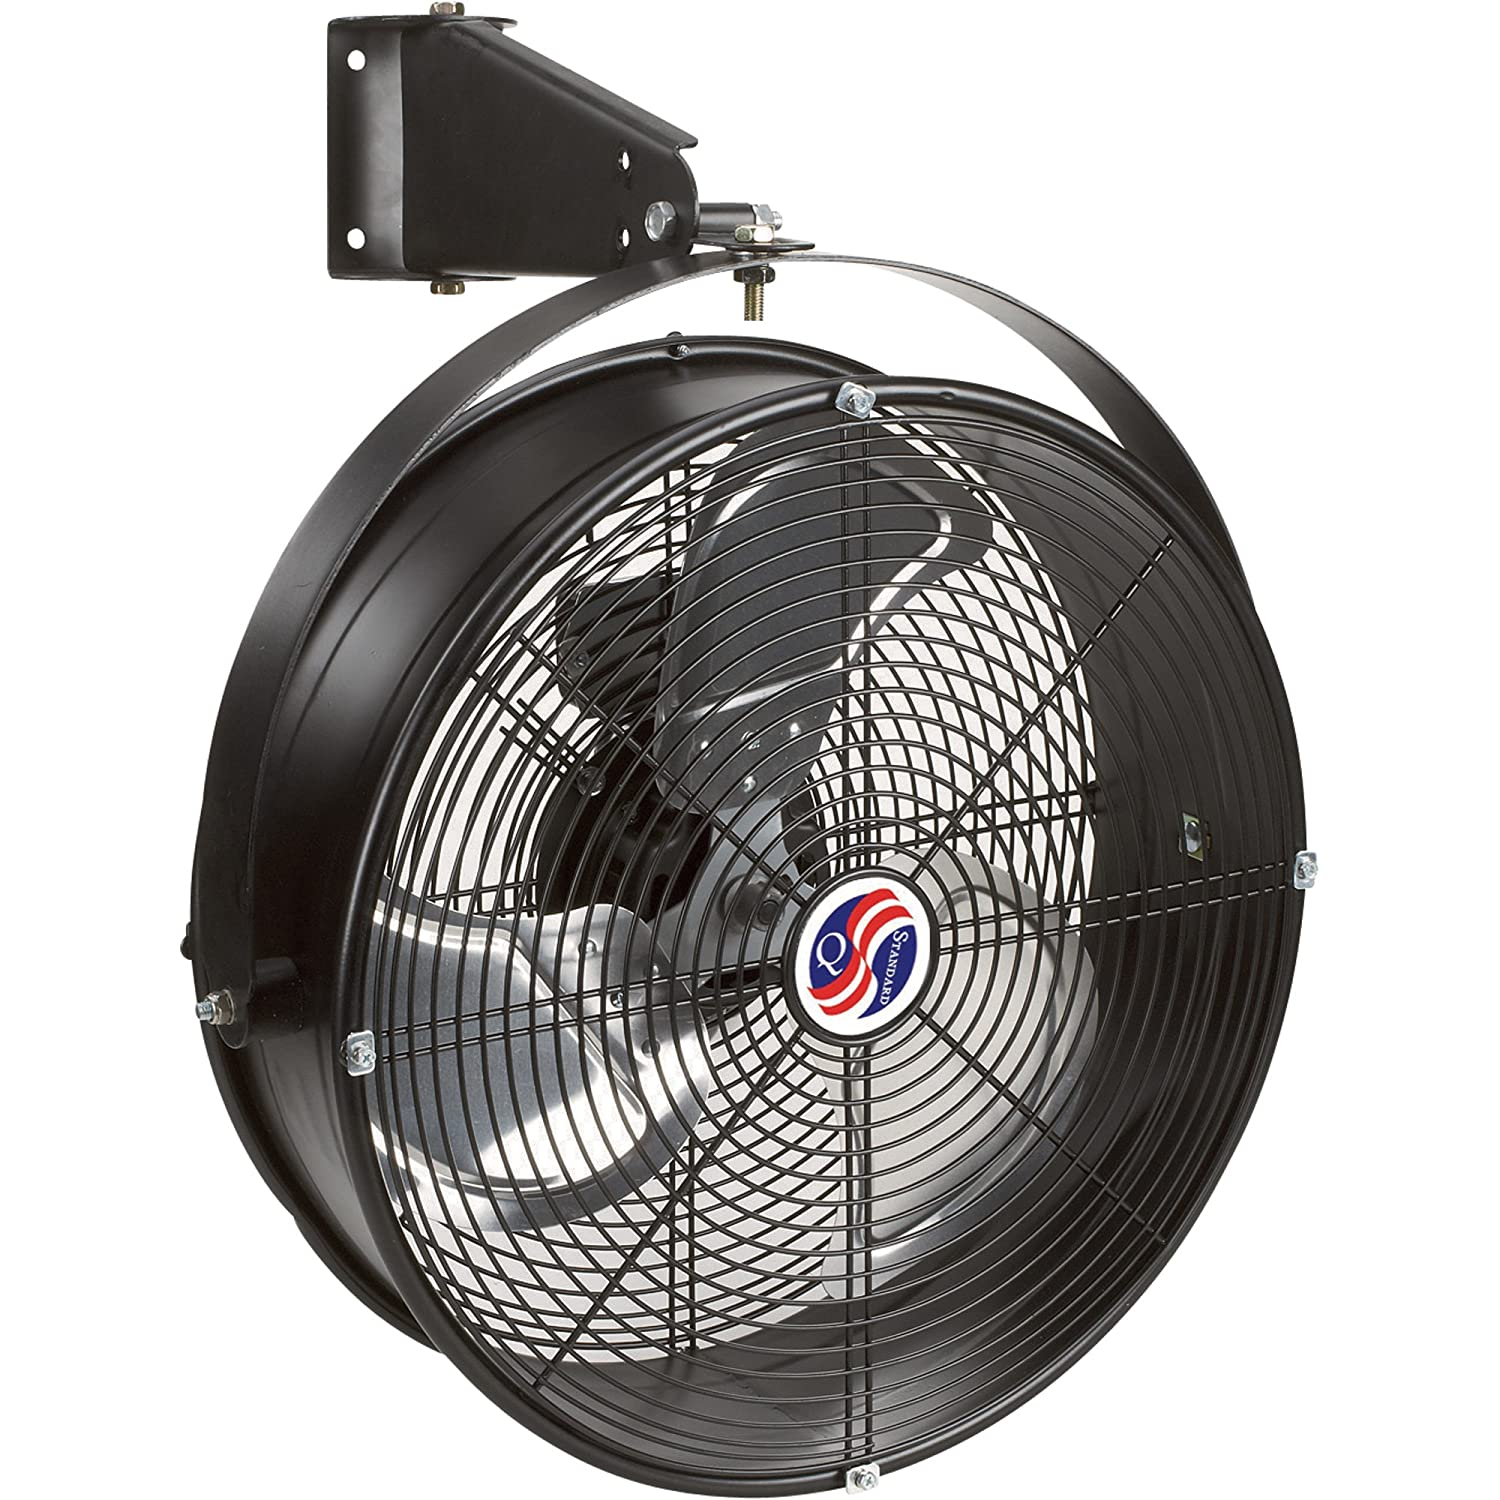 Q Standard Garage Fan 18in Model Misc Built In